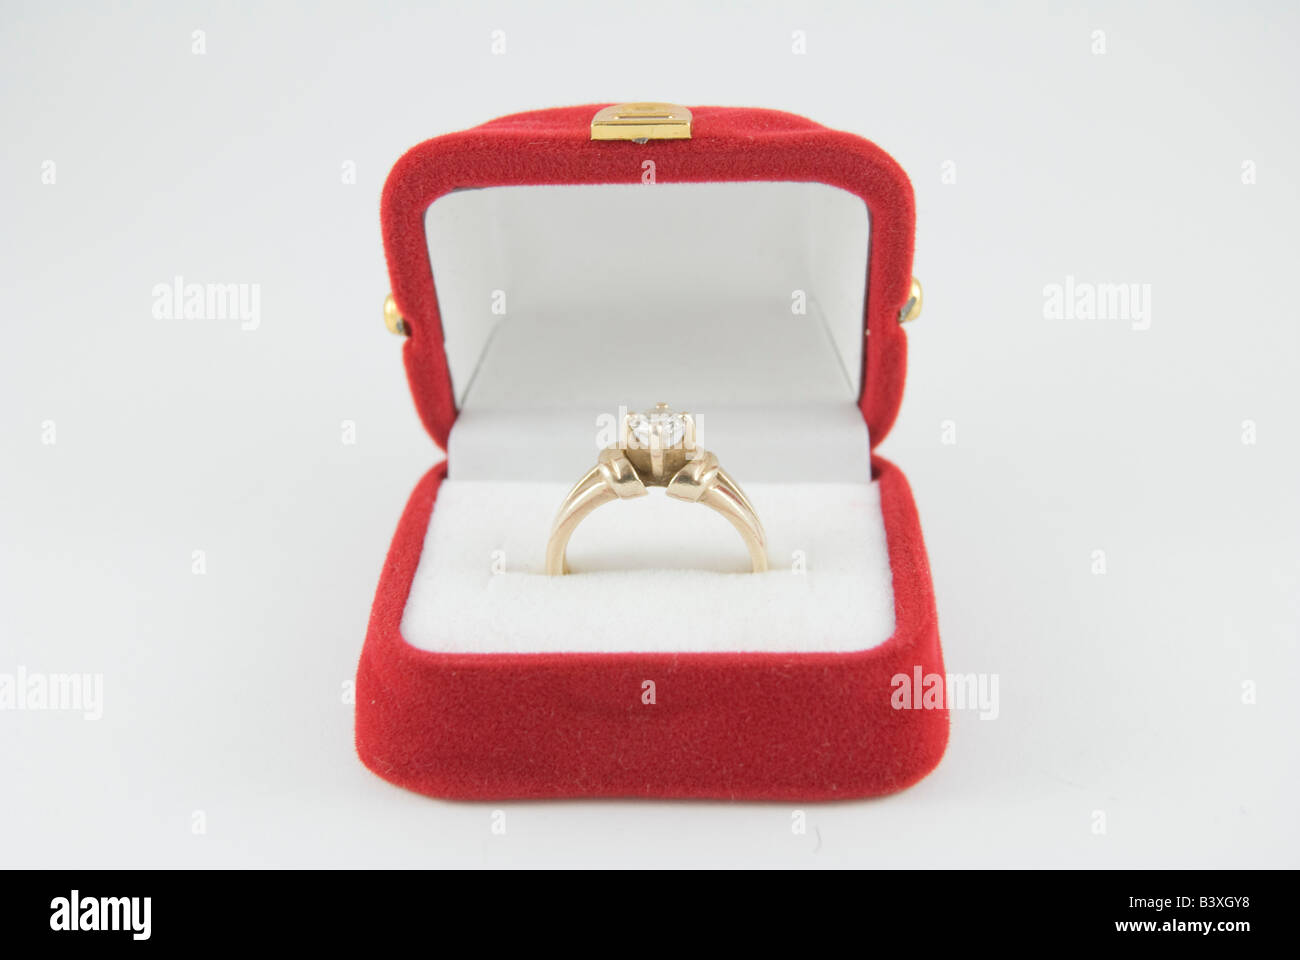 bd301de46 Diamond Engagement Ring in red box on white background Stock Photo ...